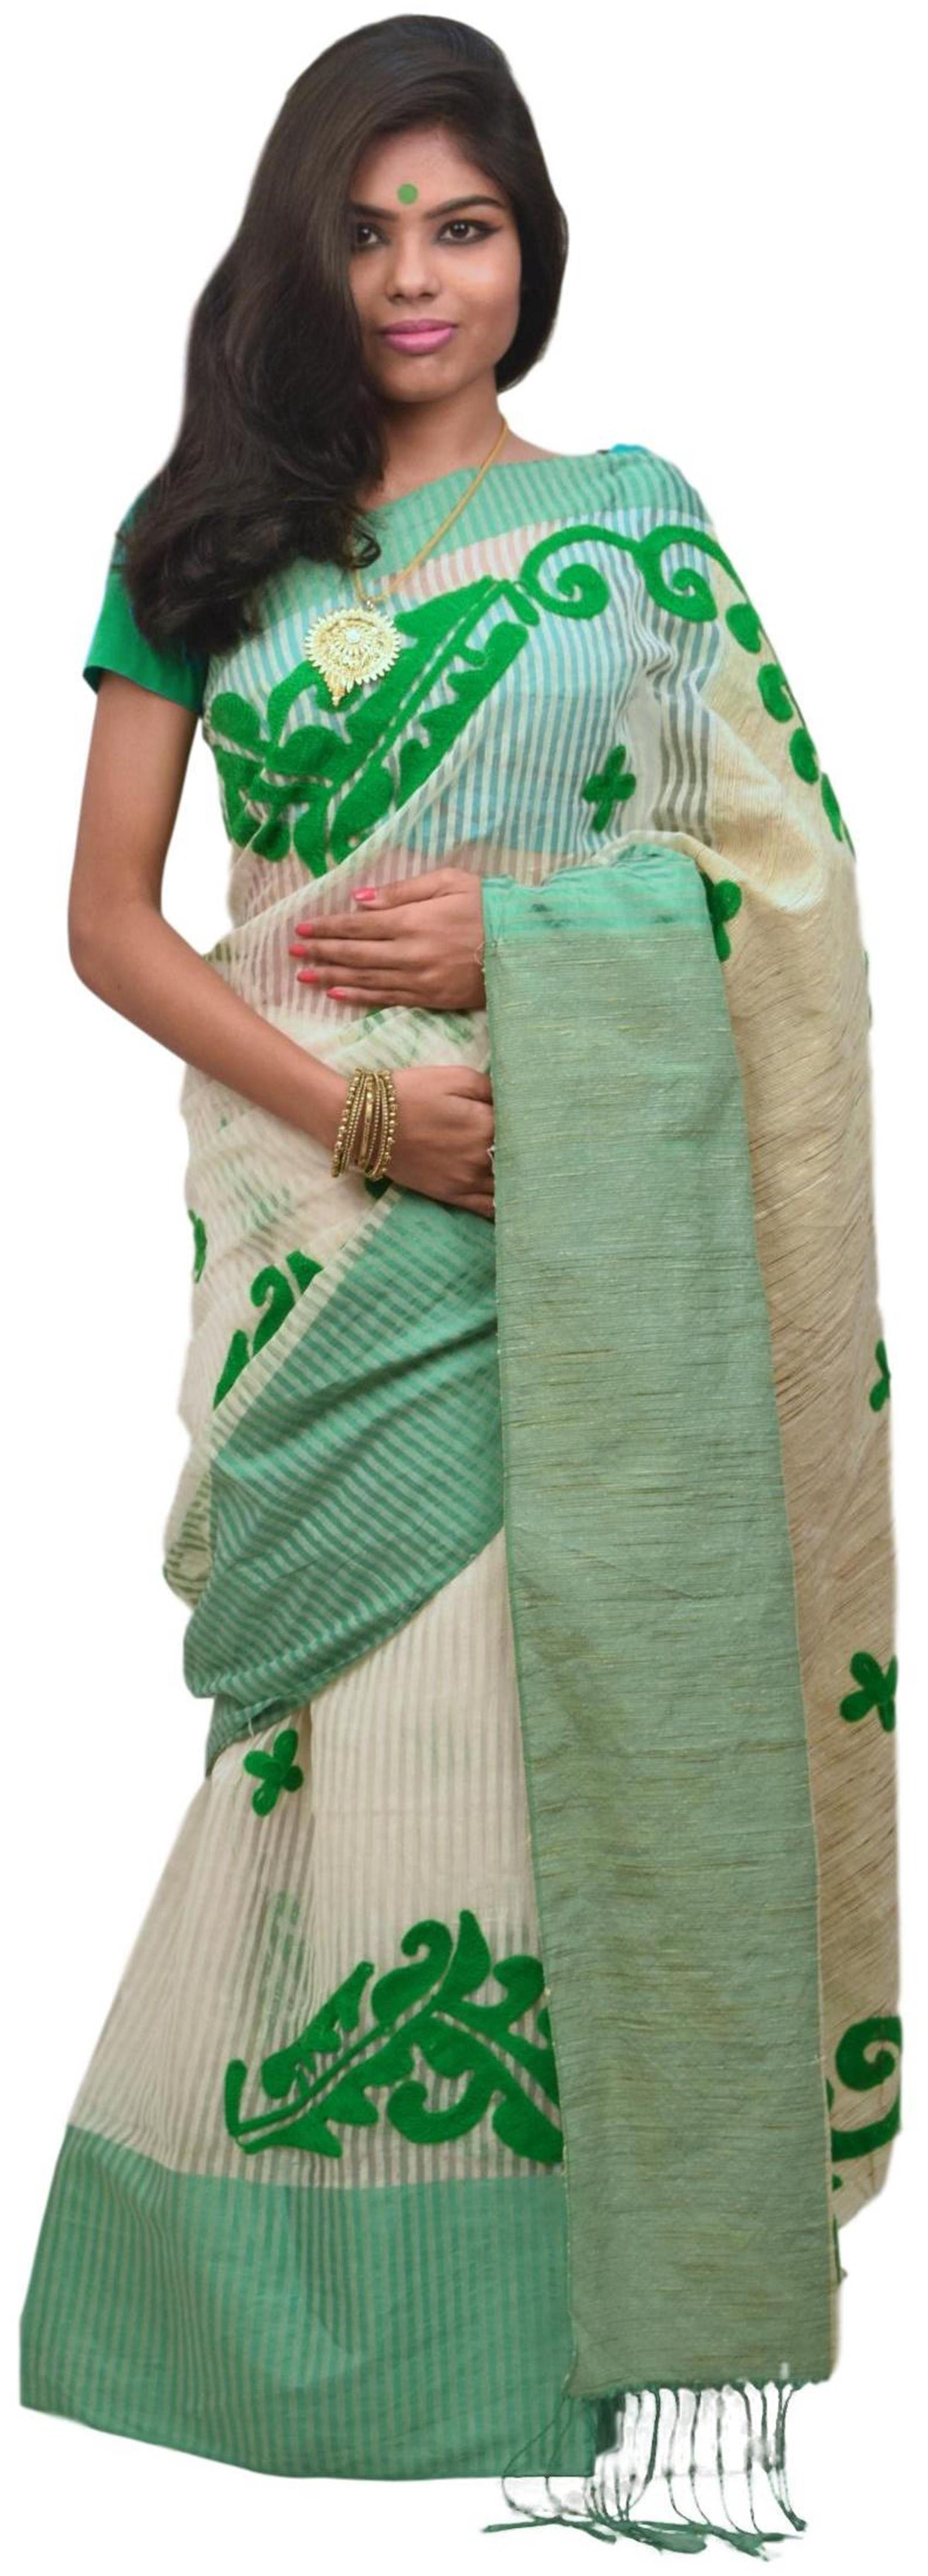 Cream & Green Designer PartyWear Cotton Thread Work Boutique Style Saree Sari E045